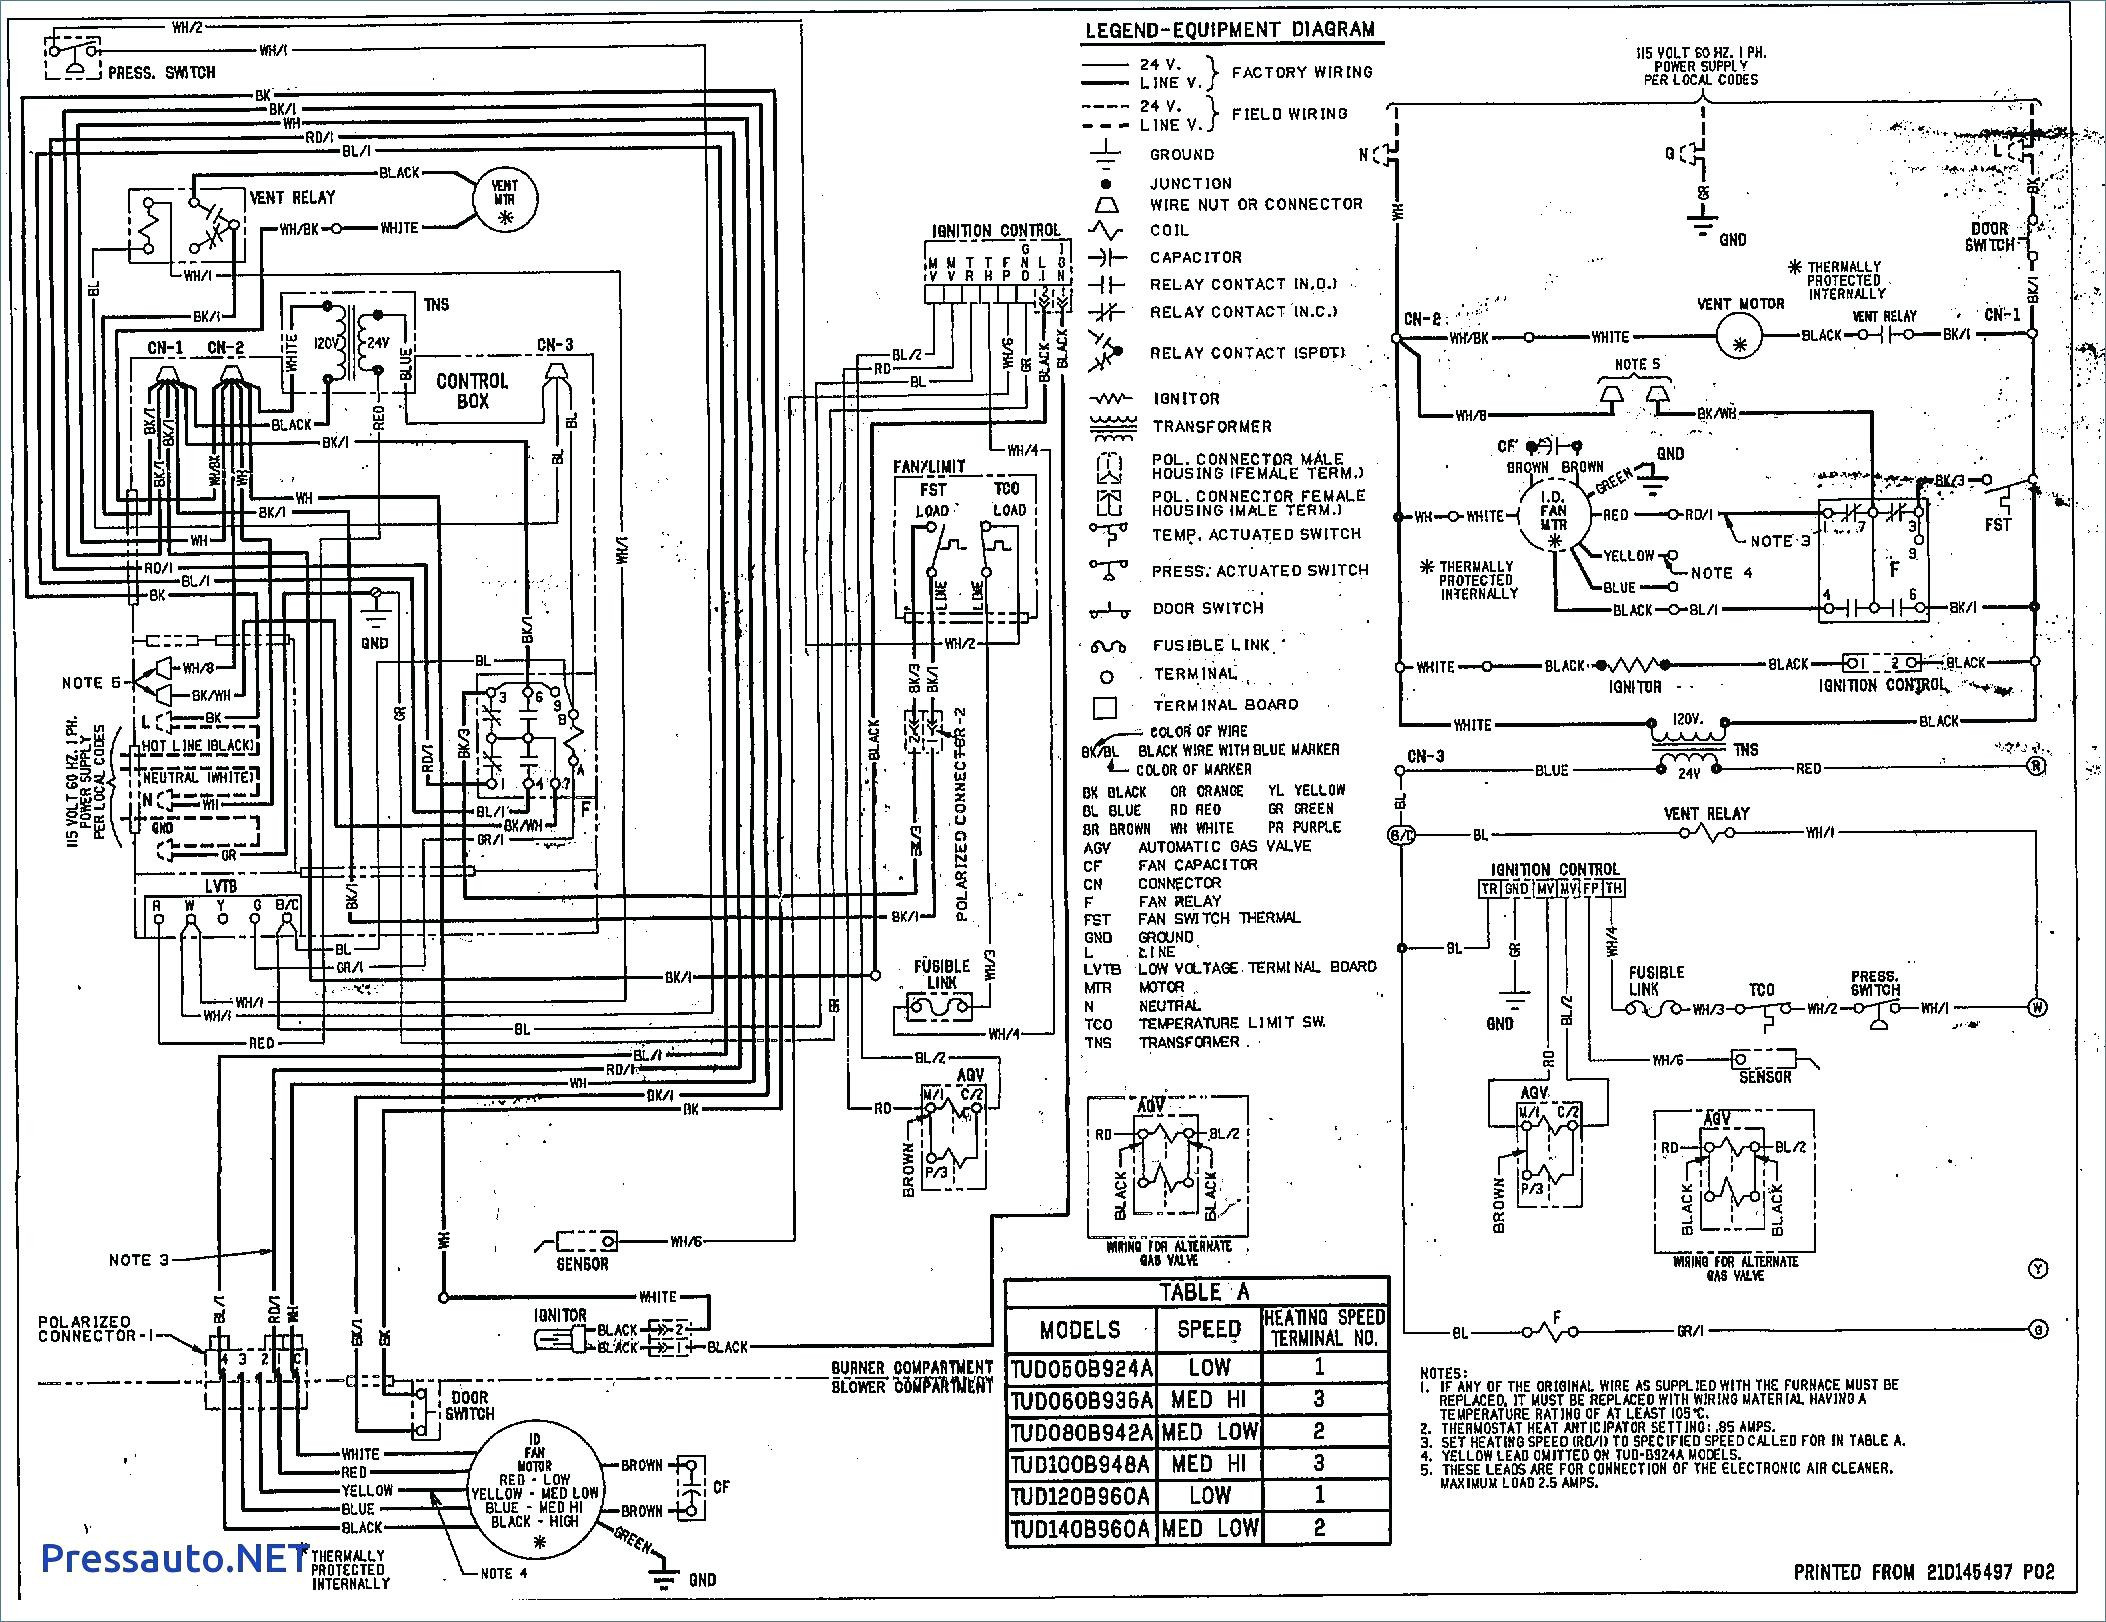 Wiring Diagram For A Reem Hot Water Heater